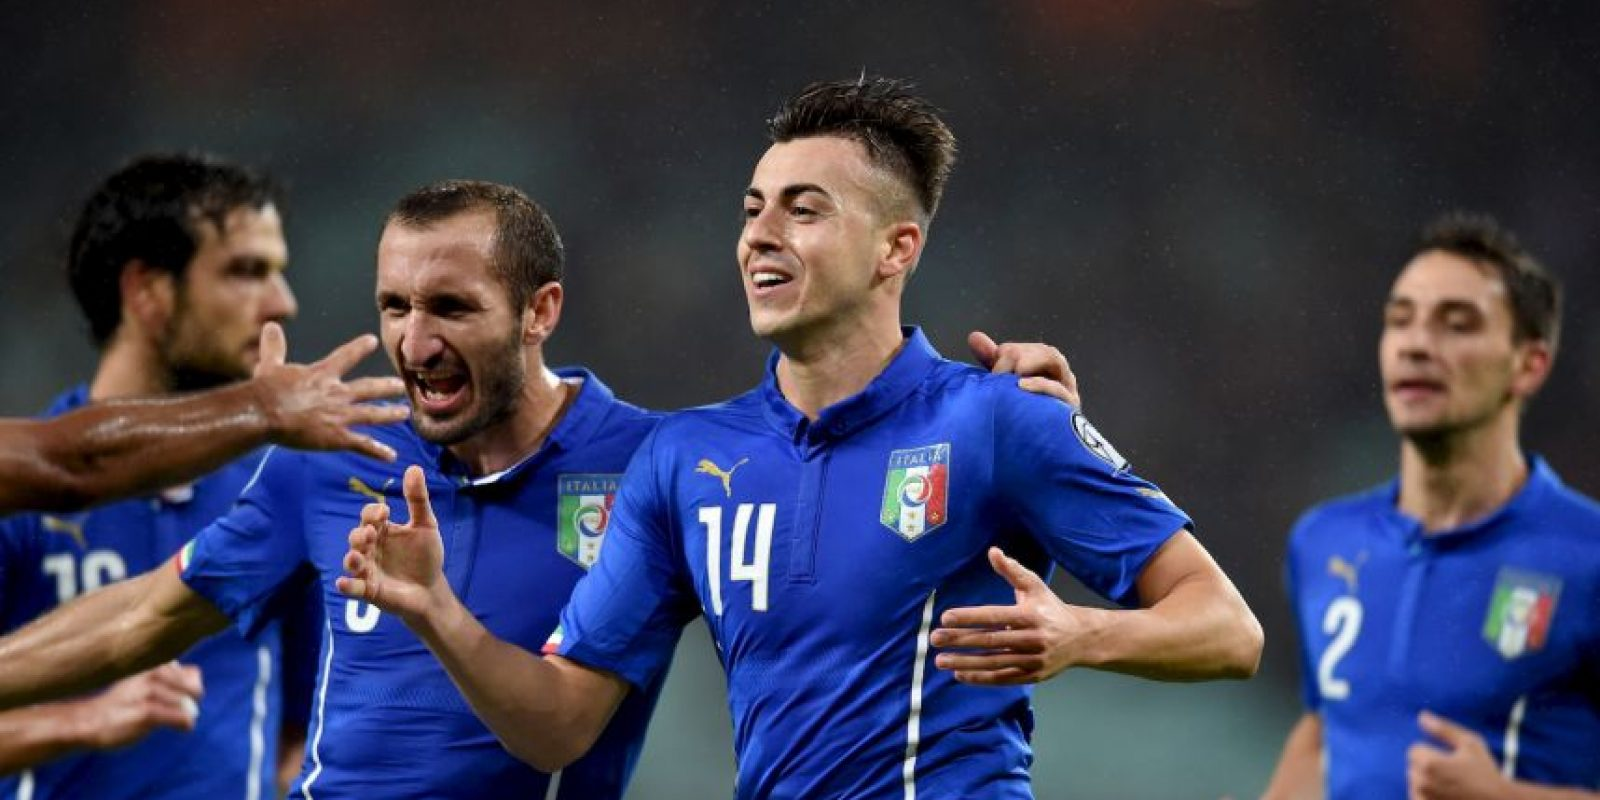 BOMBO 2: Italia Foto: Getty Images